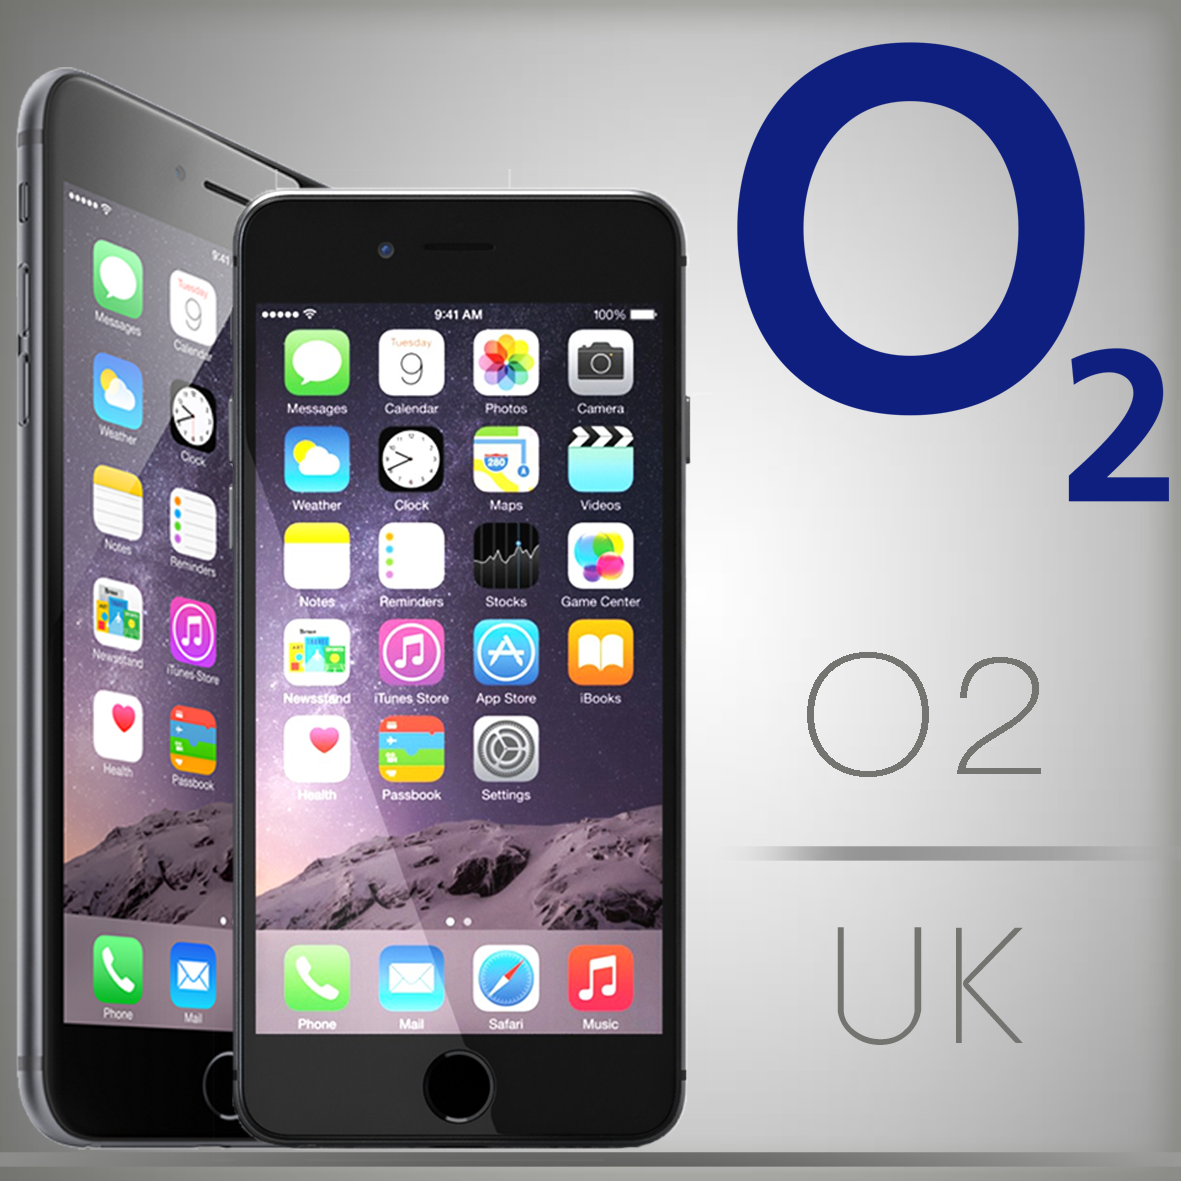 Is O2 a good mobile network?